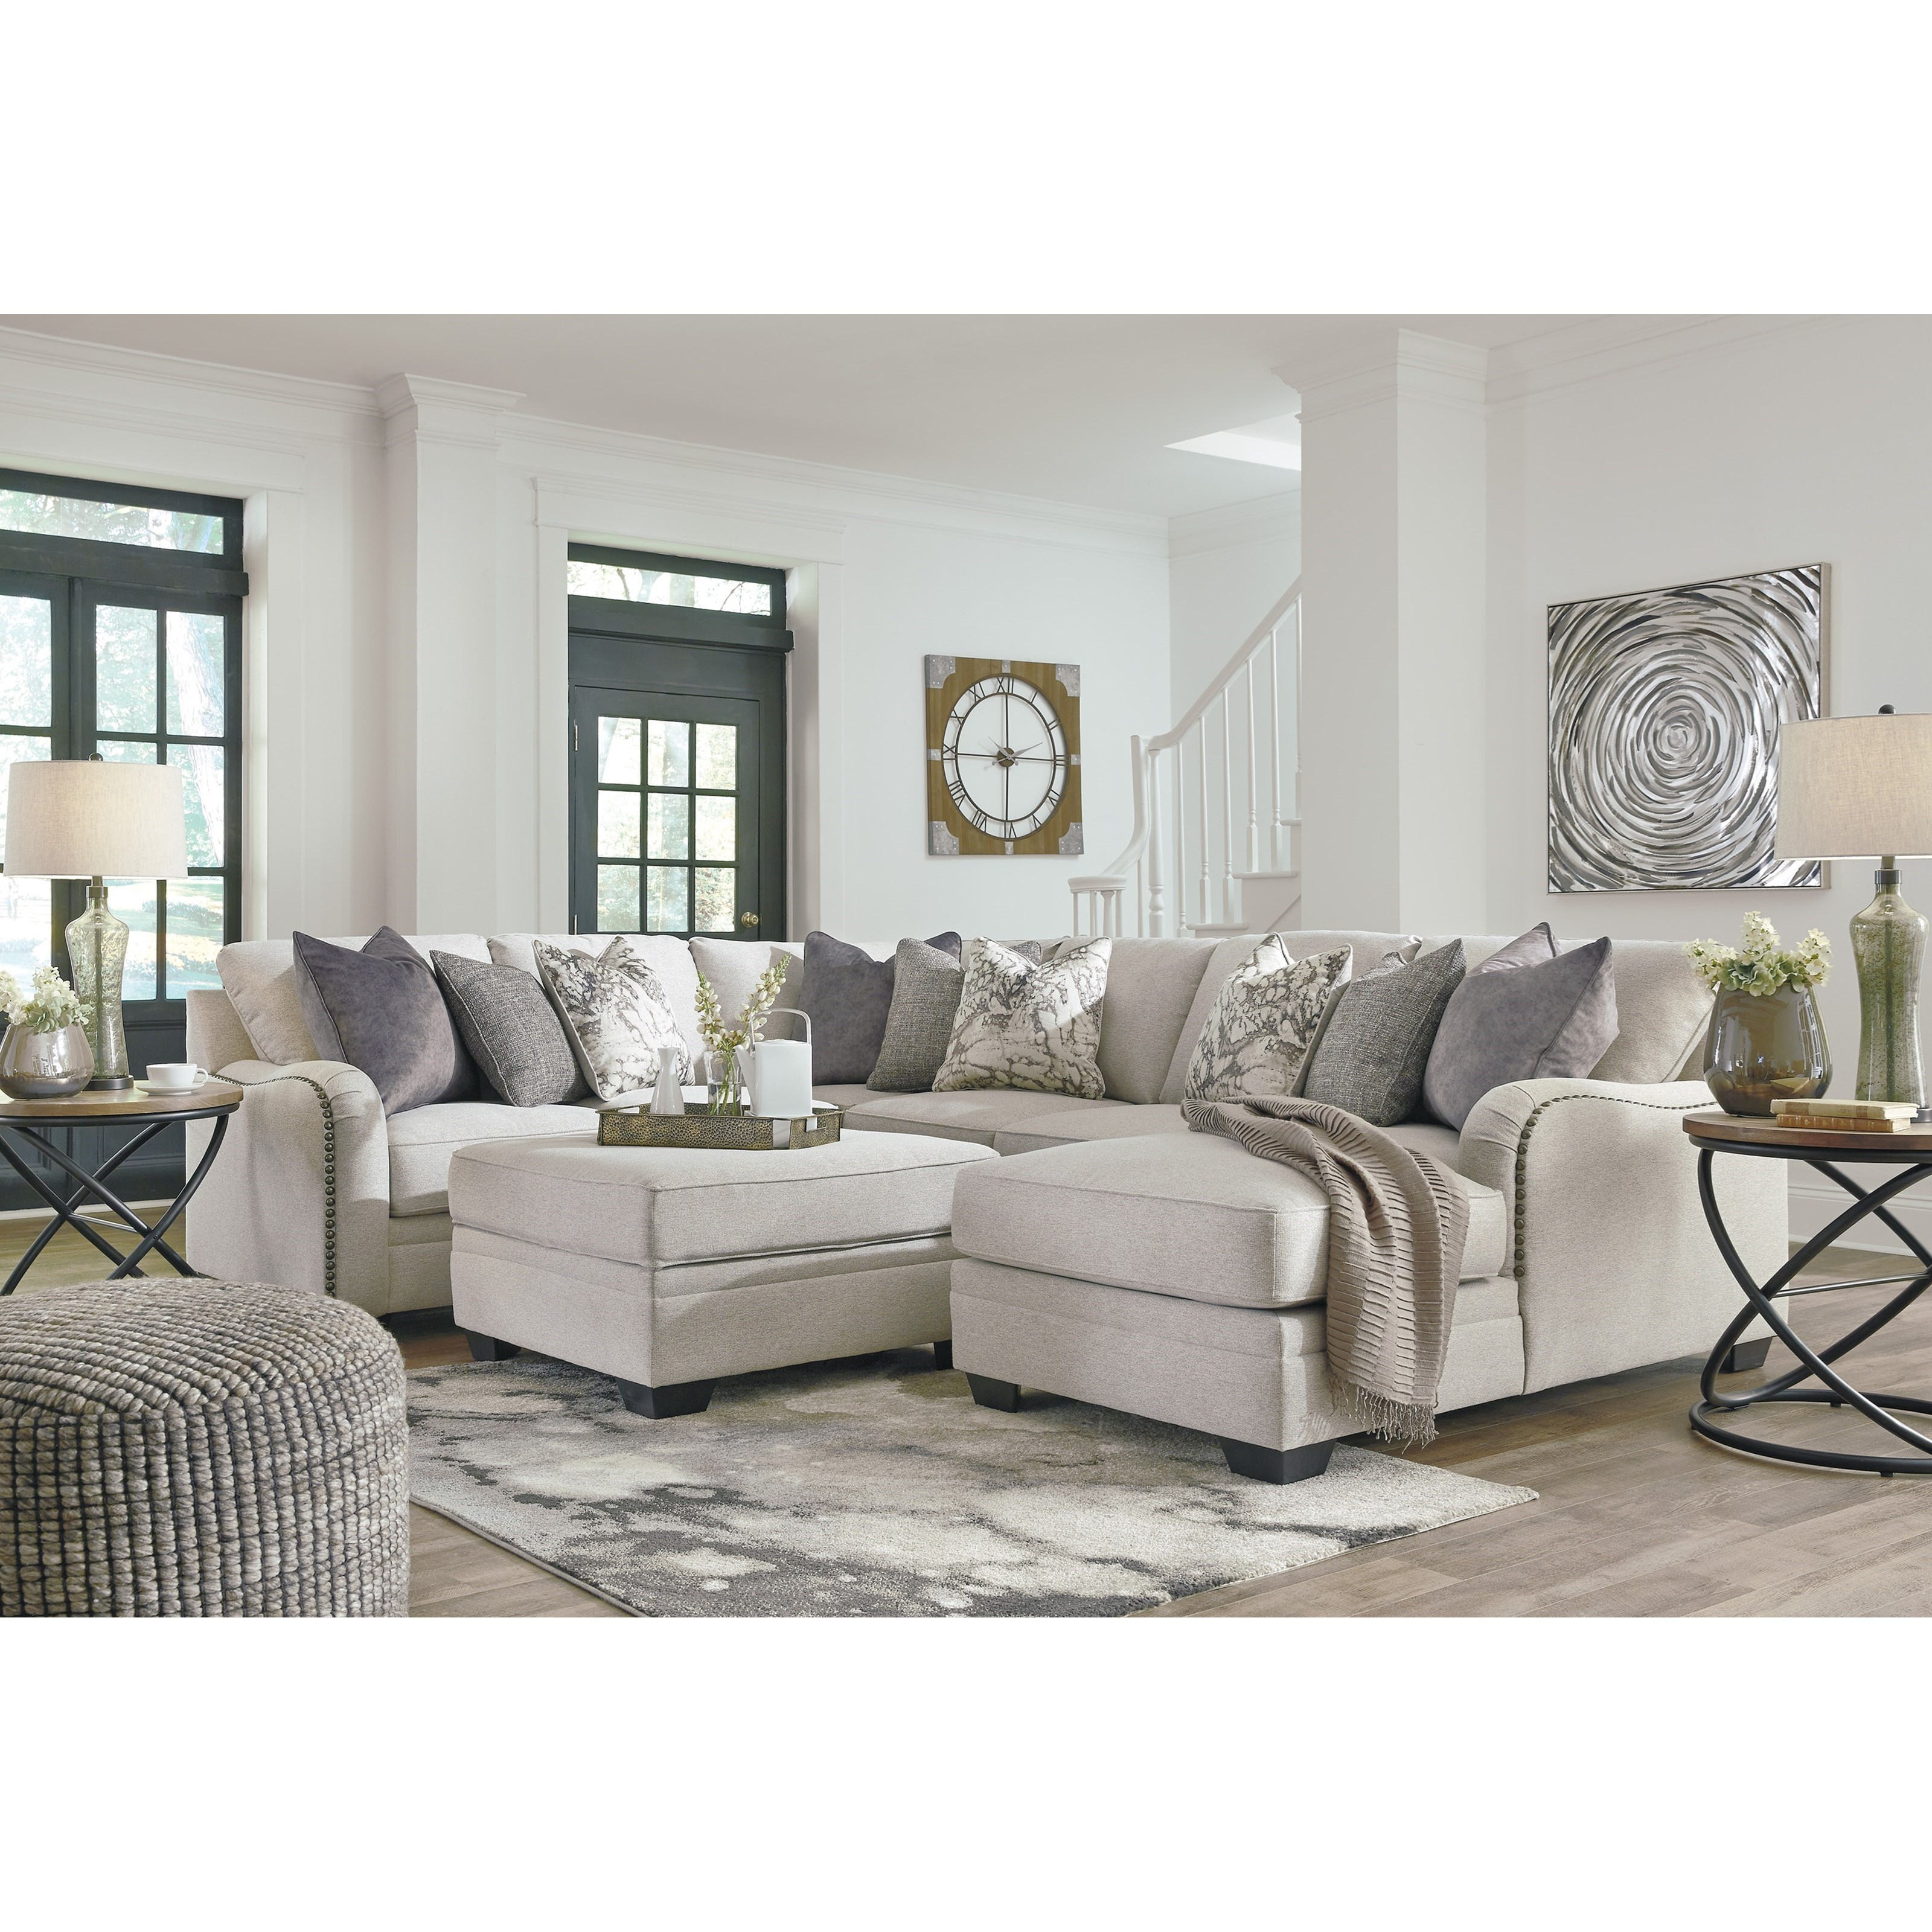 Benchcraft By Ashley Dellara Casual 4 Piece Sectional With Right Chaise Royal Furniture Sectional Sofas